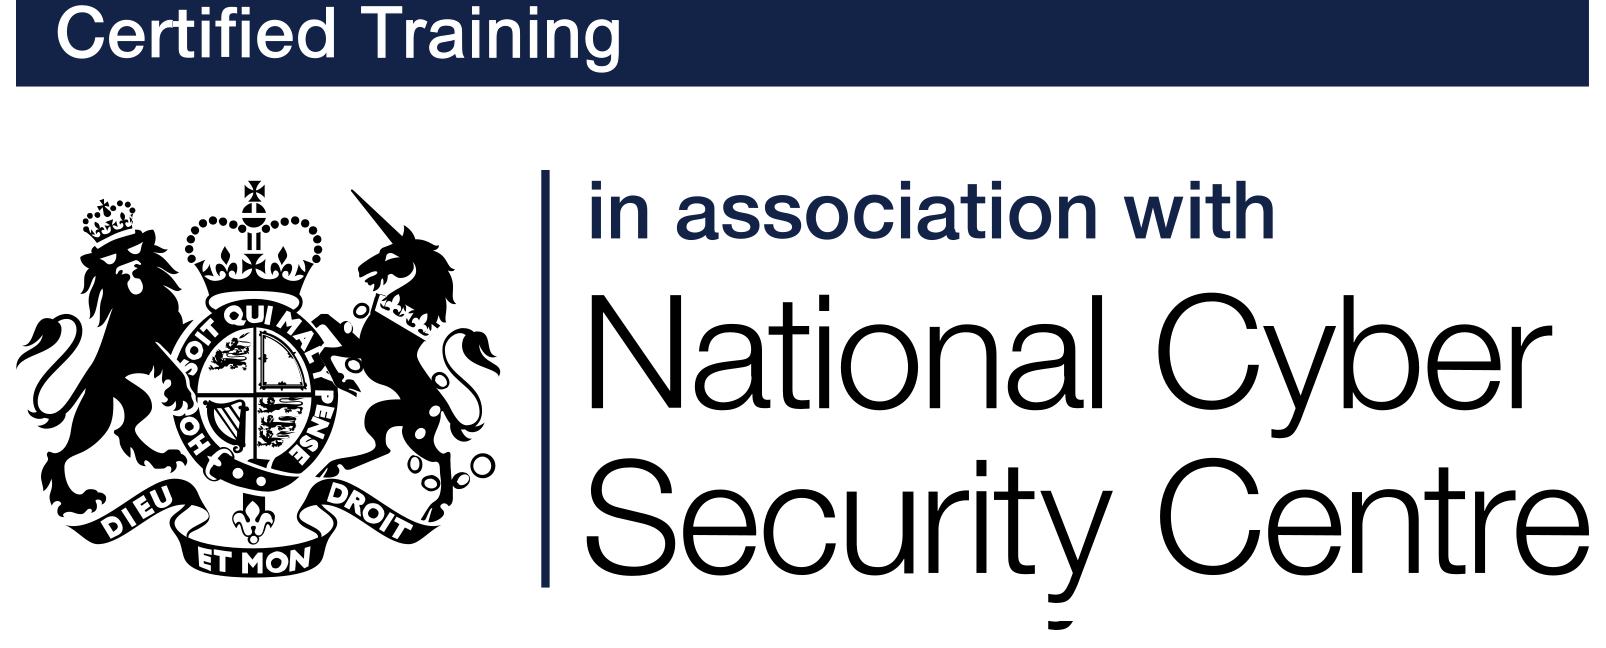 KnowBe4's Security Awareness Essentials Certified in Association With the UK's National Cyber Security Centre